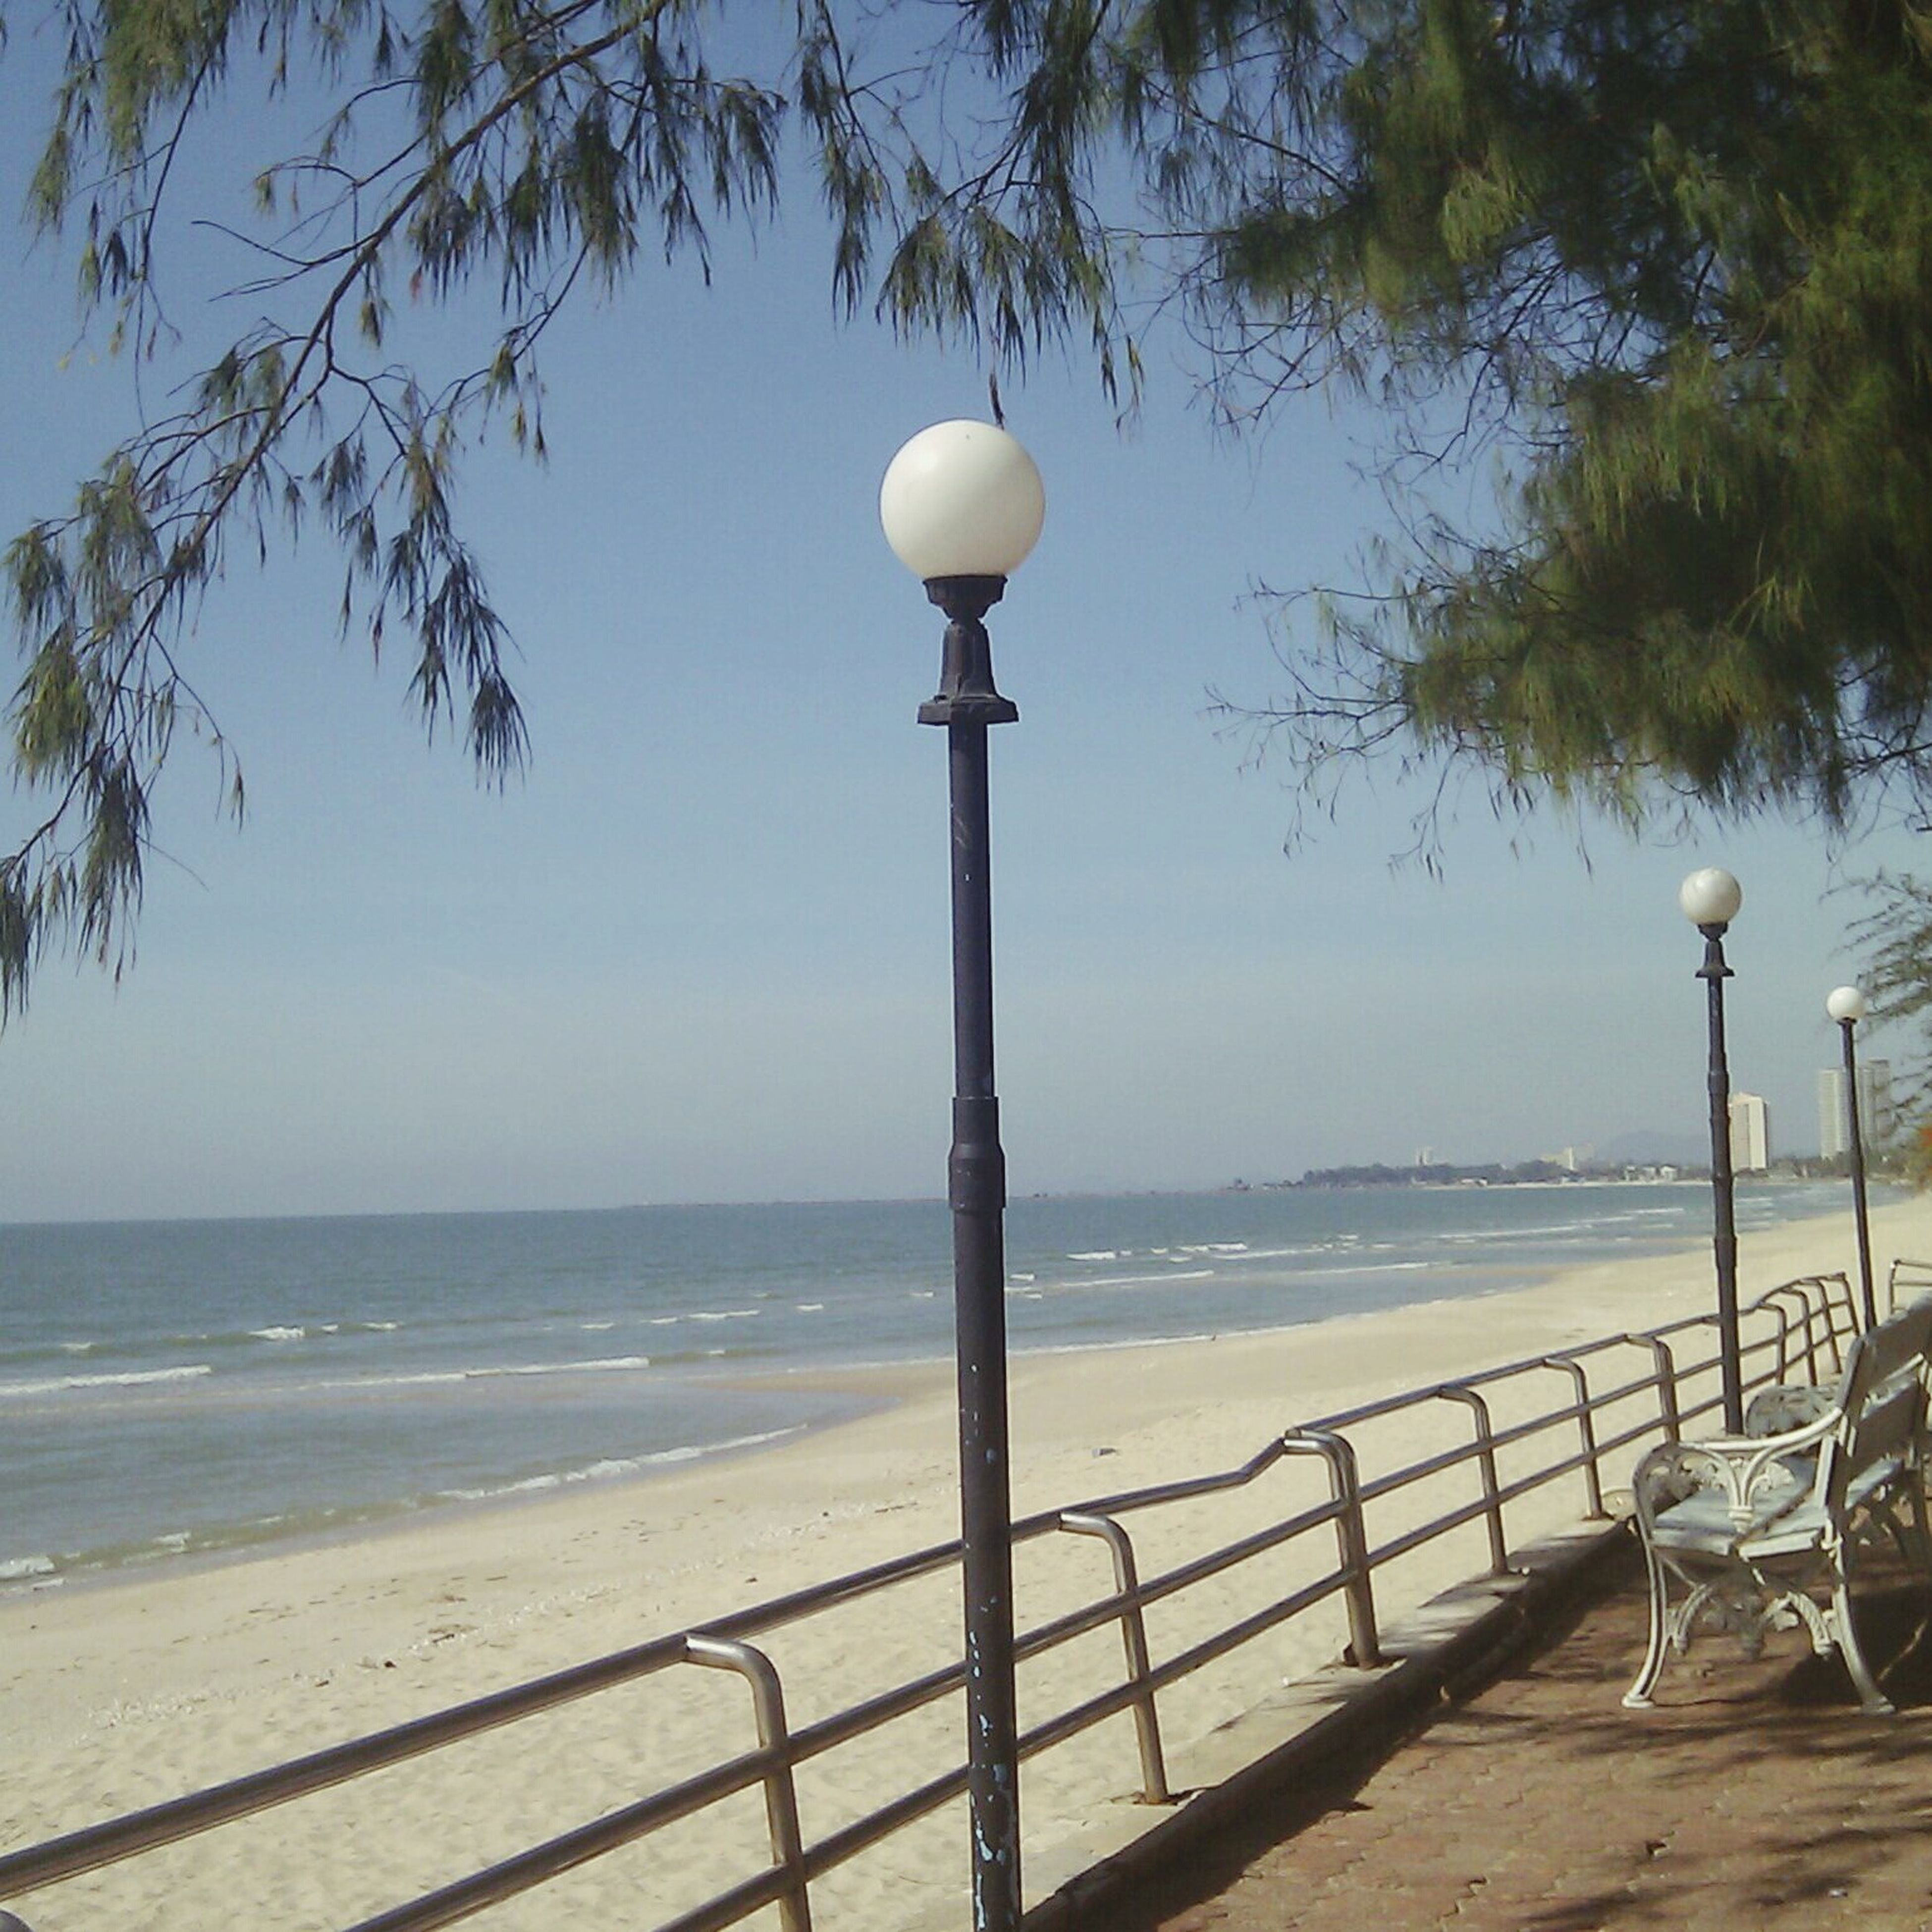 sea, street light, water, lighting equipment, horizon over water, tranquility, tranquil scene, beach, tree, sky, nature, scenics, railing, lamp post, clear sky, shore, beauty in nature, outdoors, no people, pole